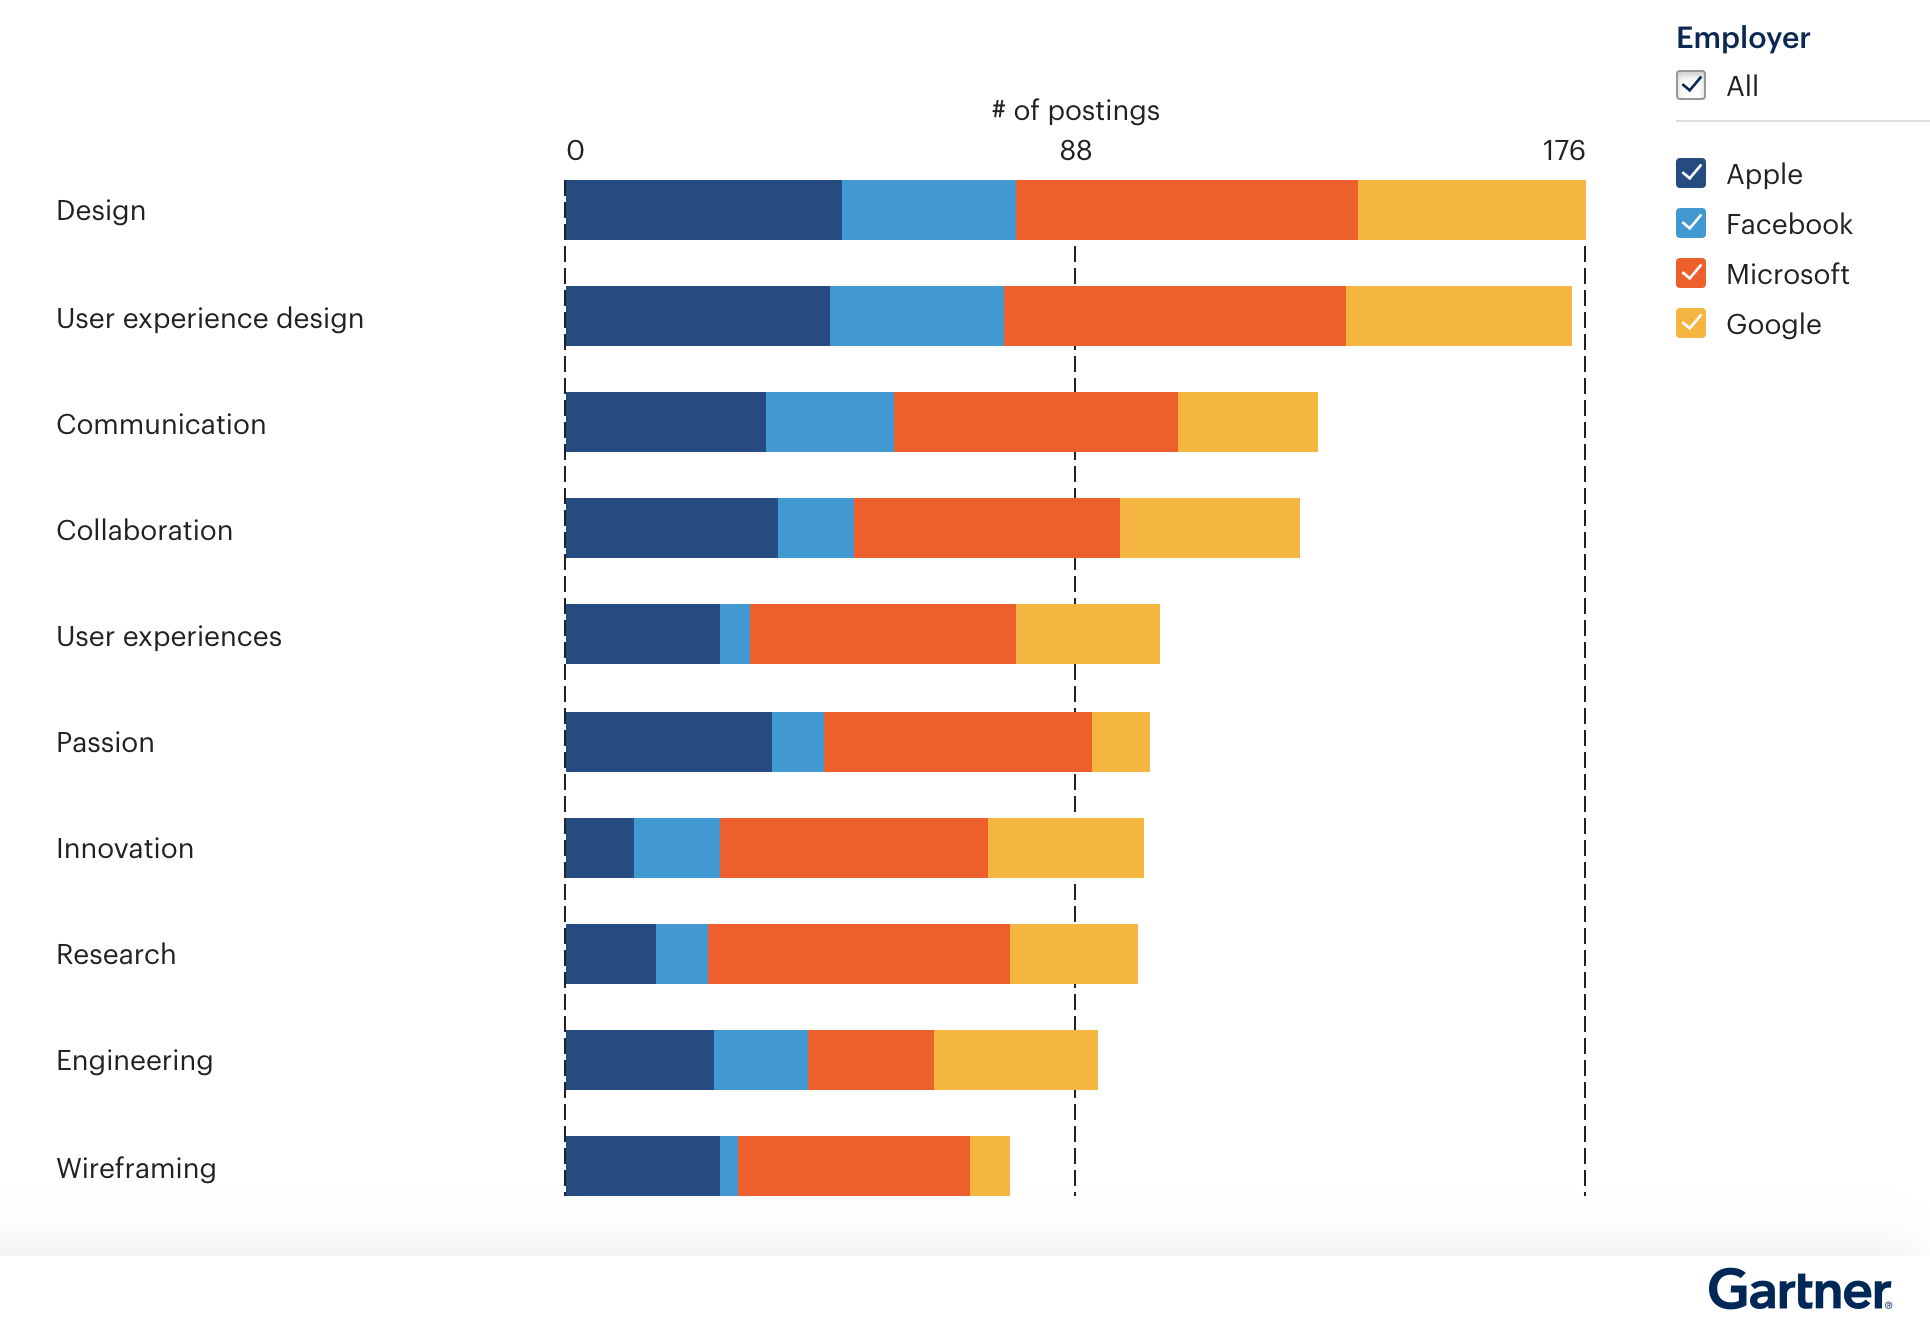 Figure 3. Top Skills for Different Employers